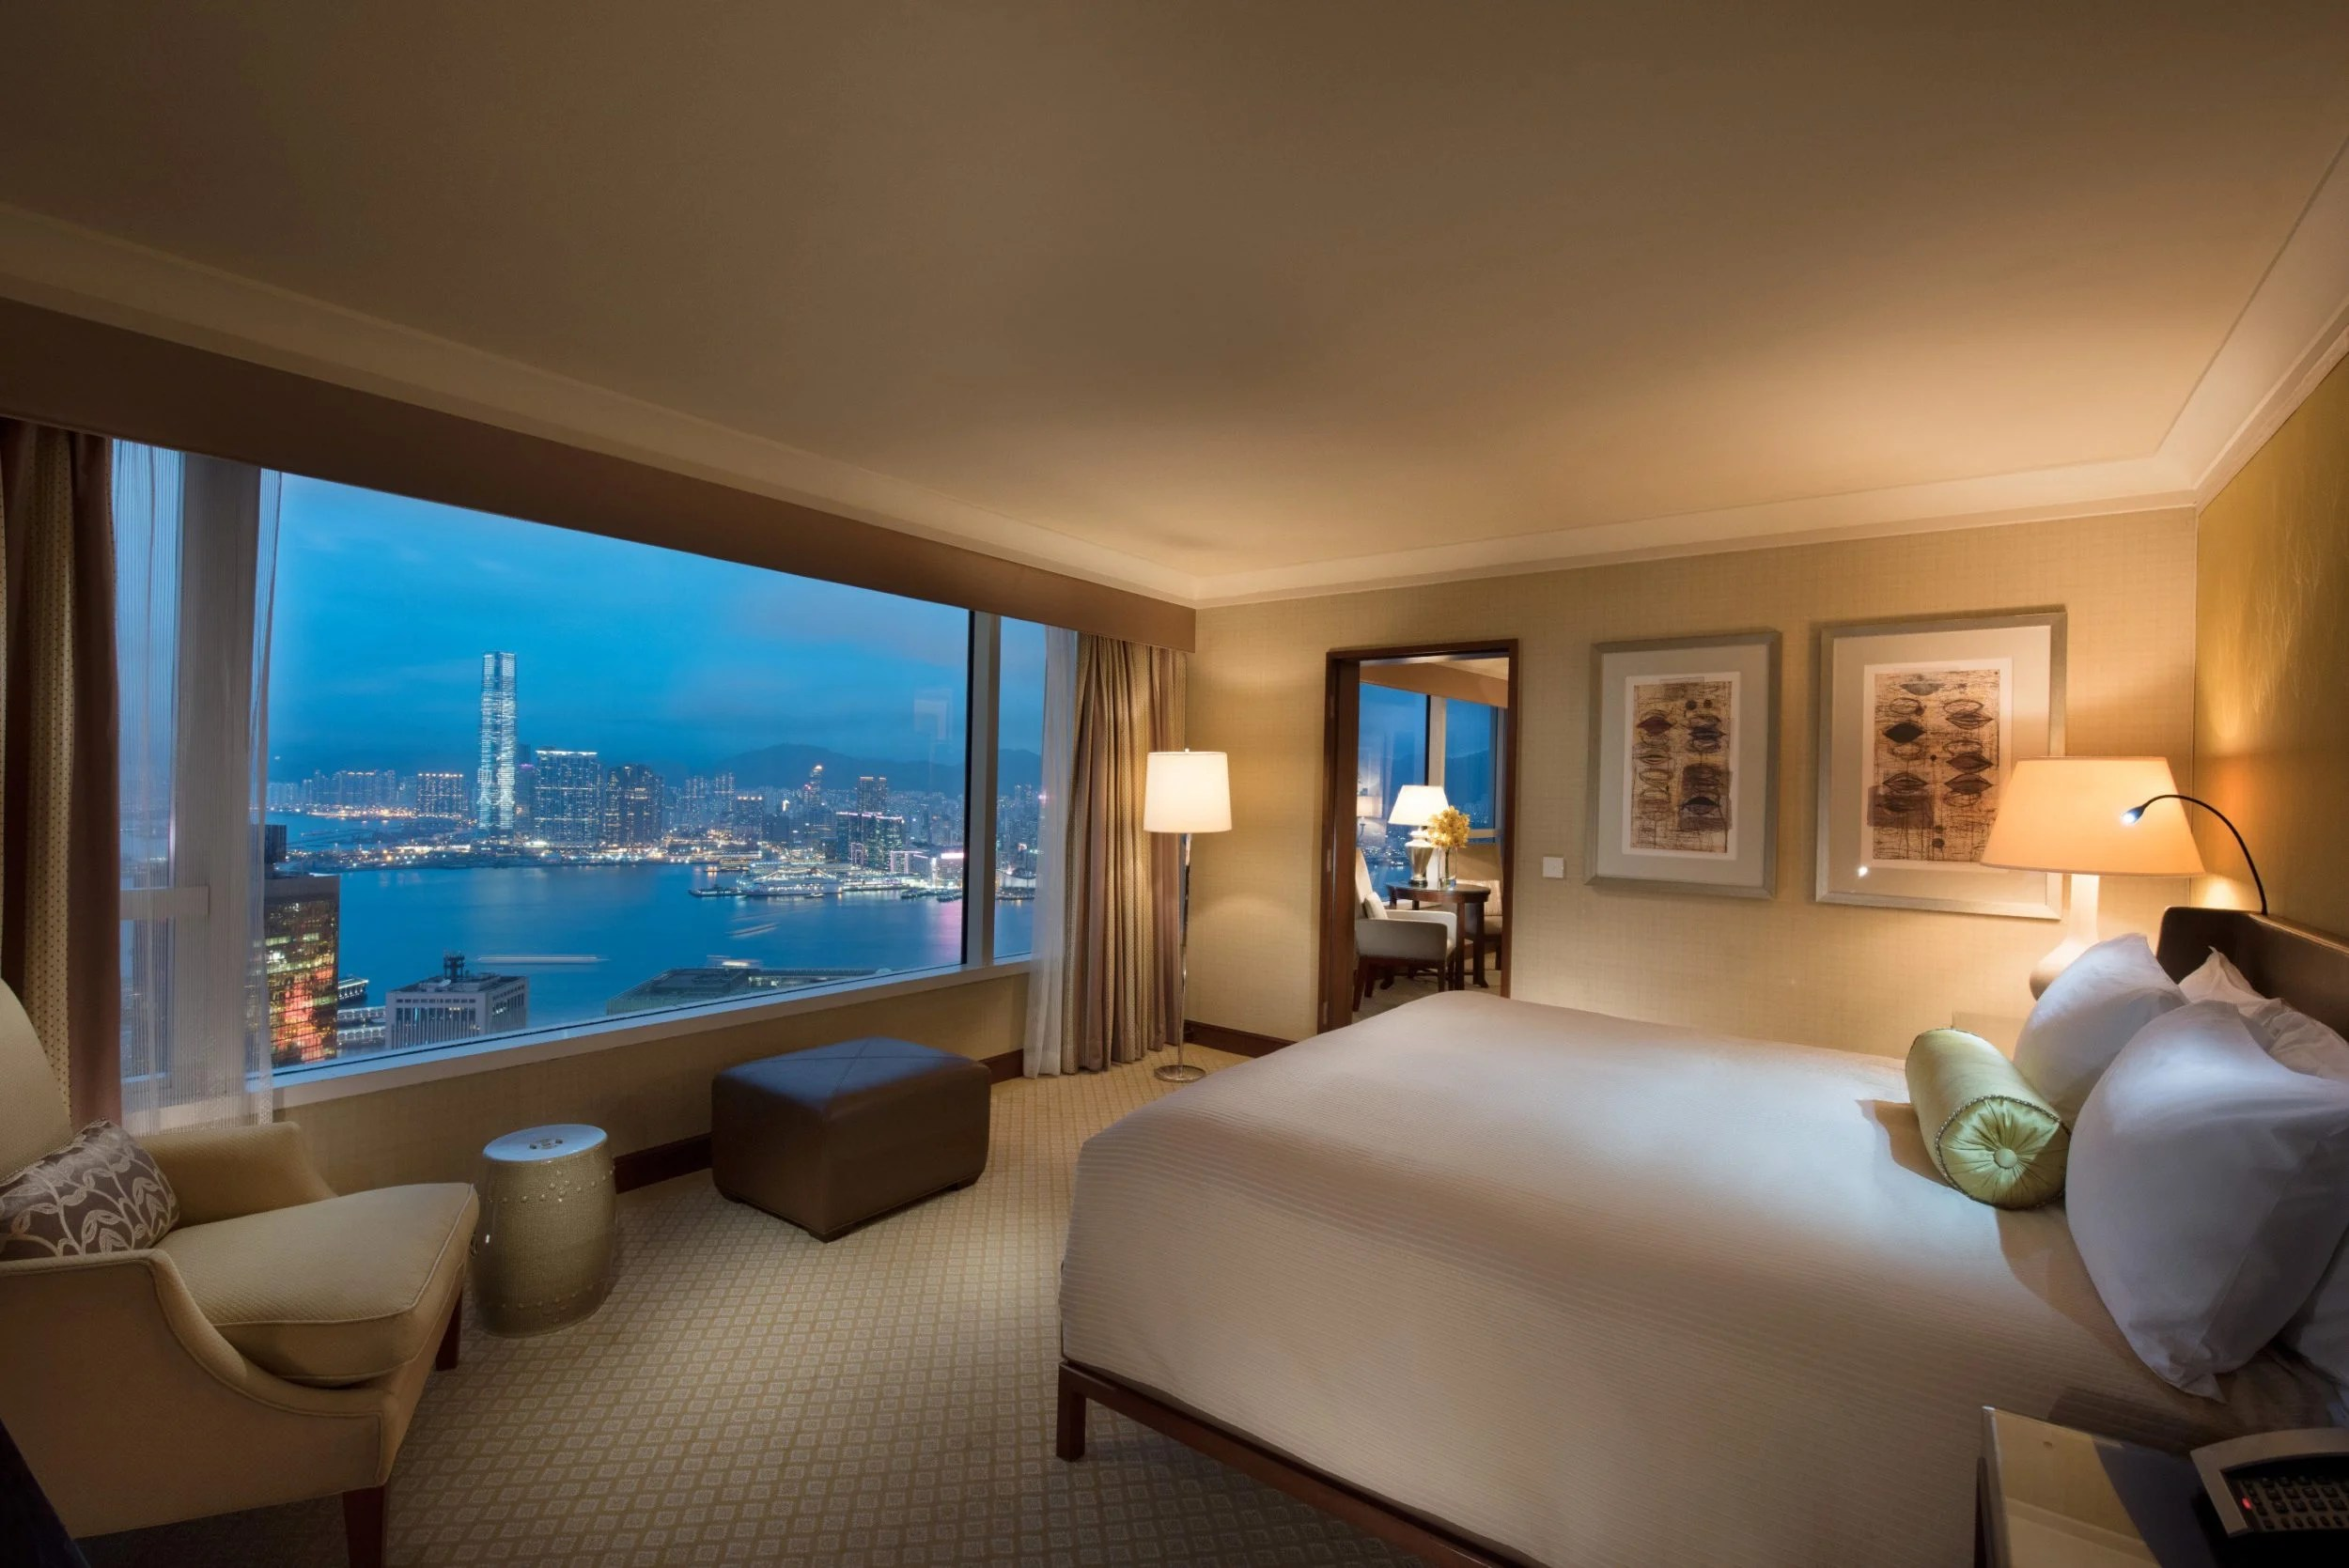 21 Best Family Hotels in Hong Kong From Luxury to Budget - La Jolla Mom